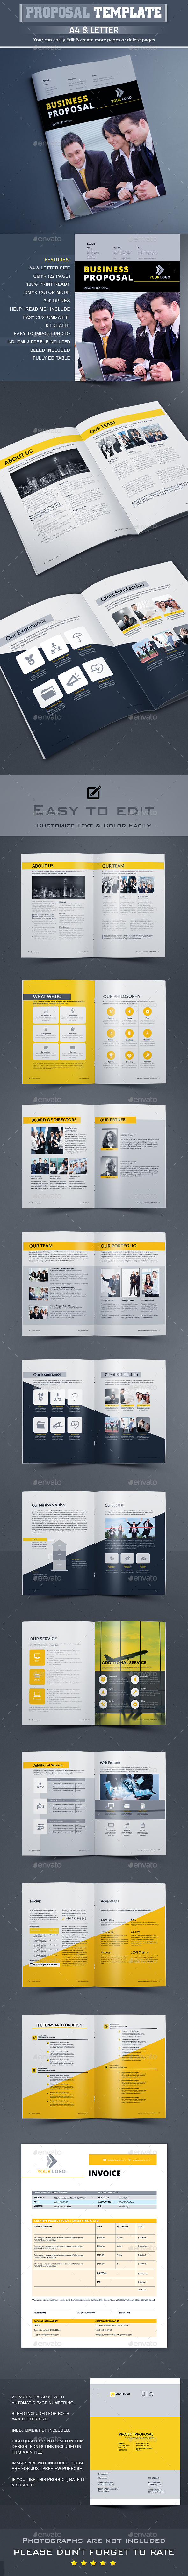 agency proposal template%0A Proposal Template